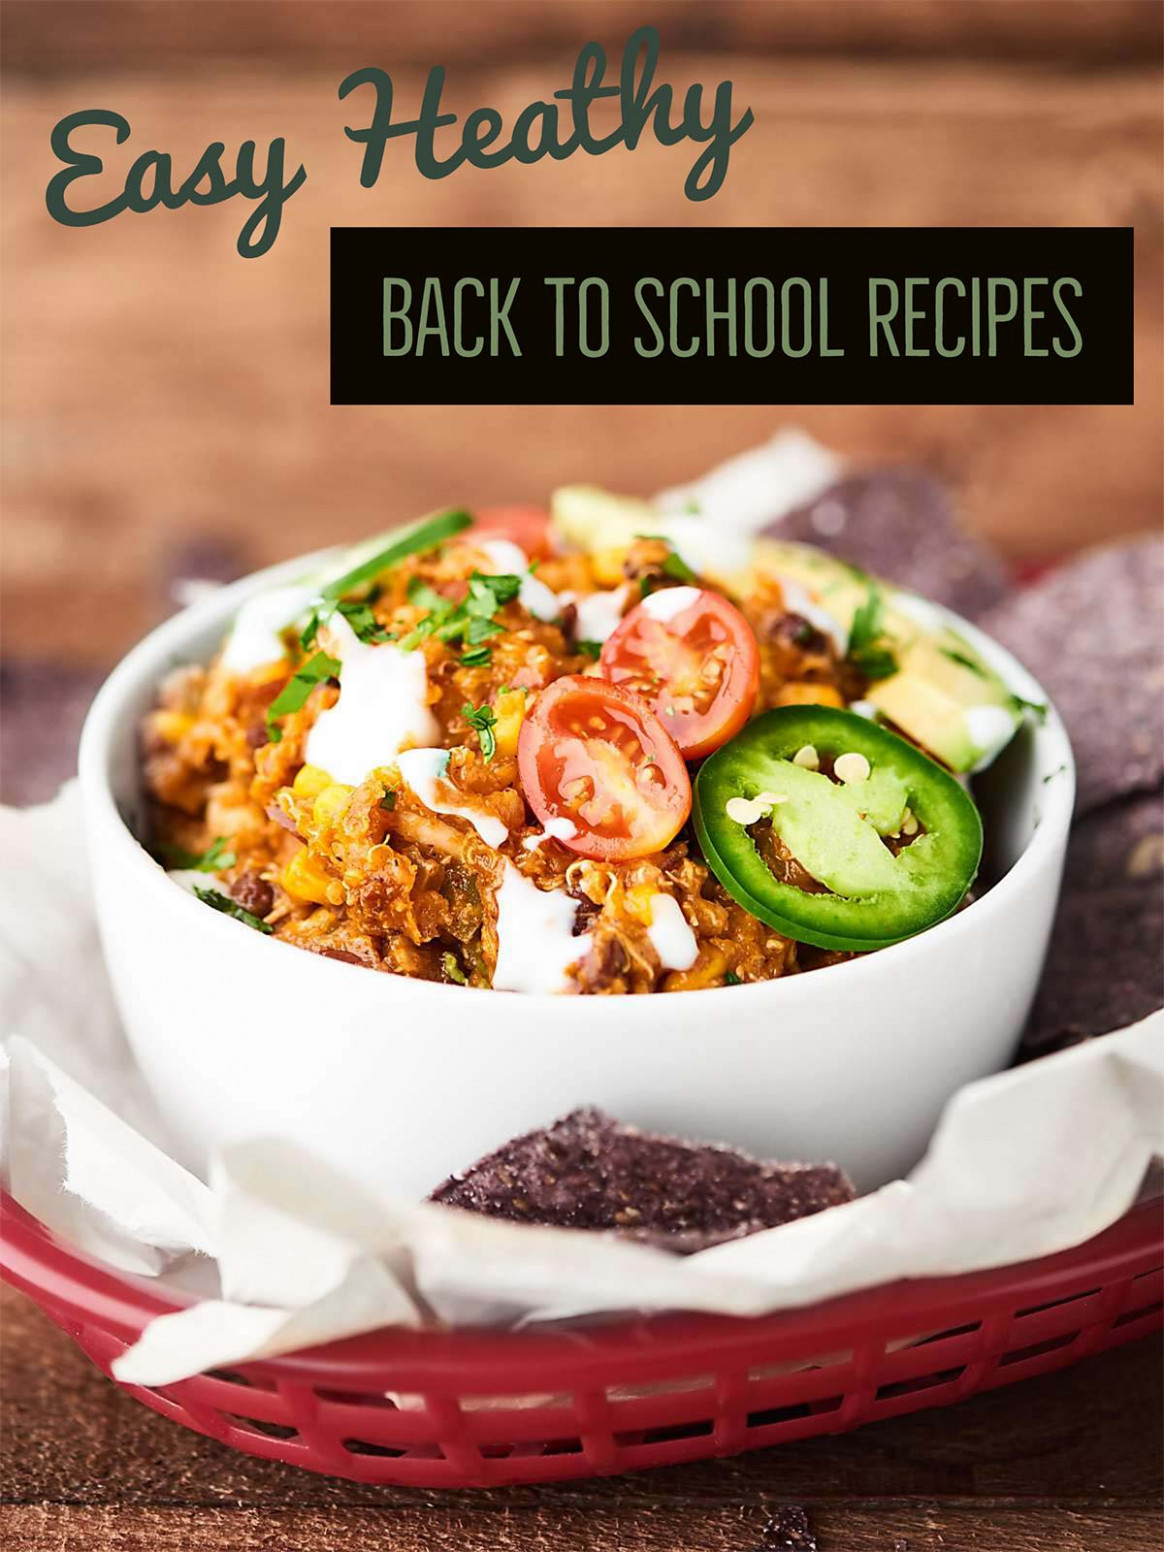 Easy Healthy Back to School Recipes - Show Me the Yummy